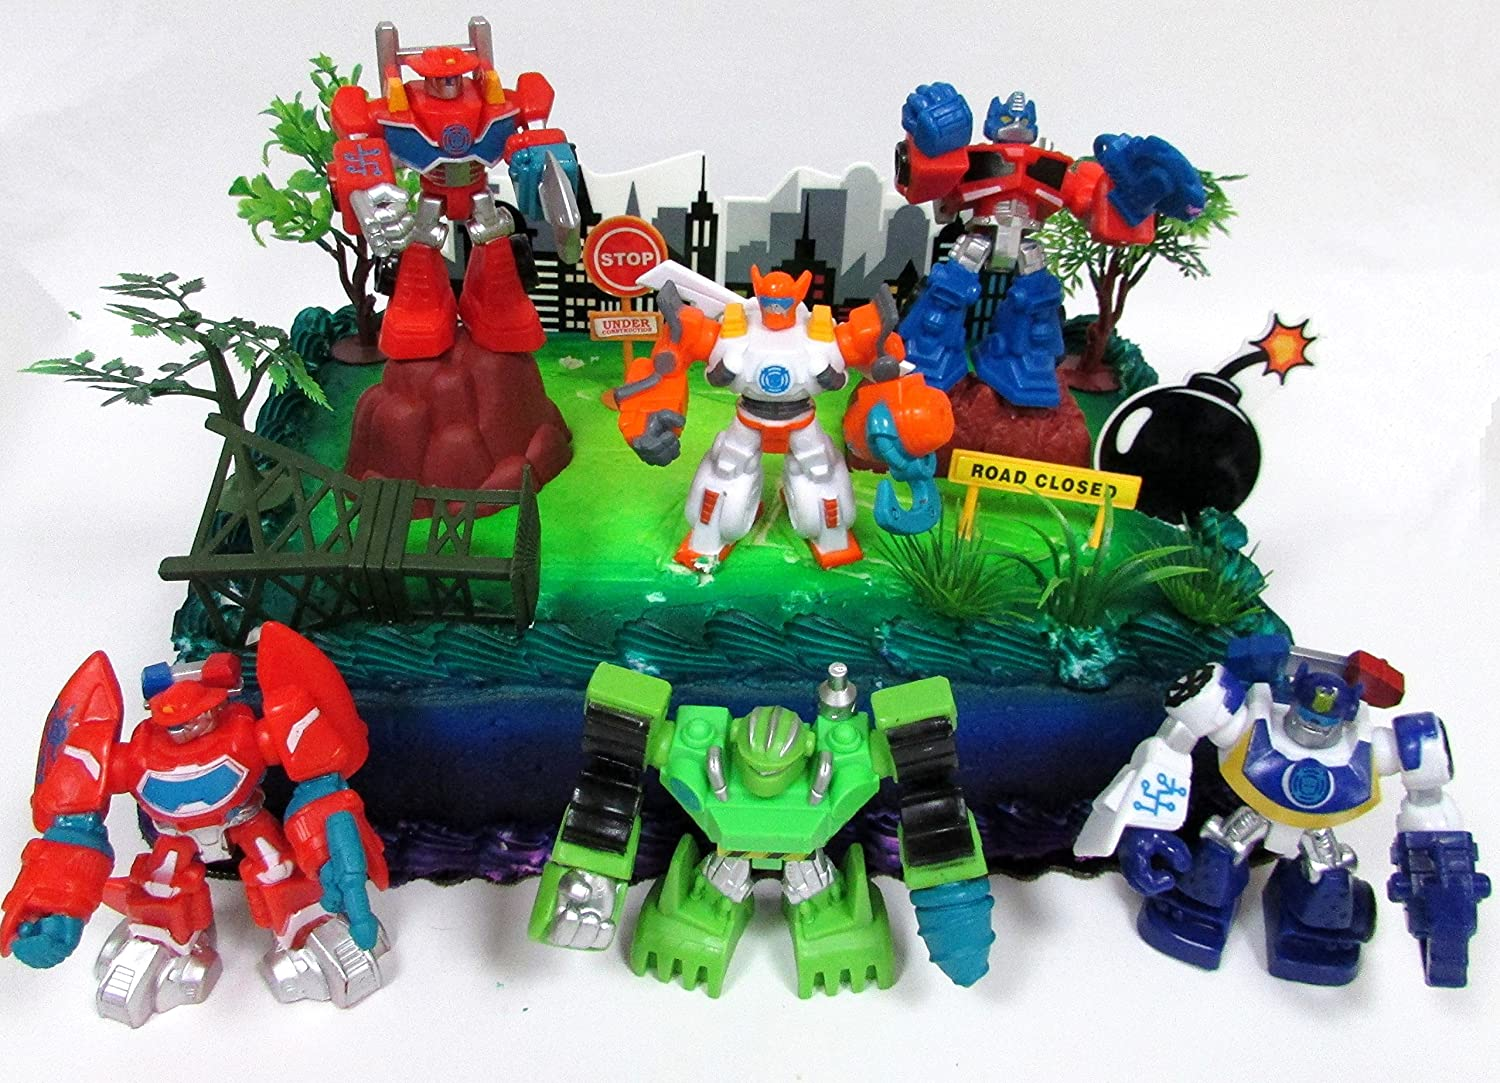 Amazon Transformers 16 Piece Birthday Cake Topper Set Featuring Optimus Prime And Friends With Decorative Themed Accessories Toys Games